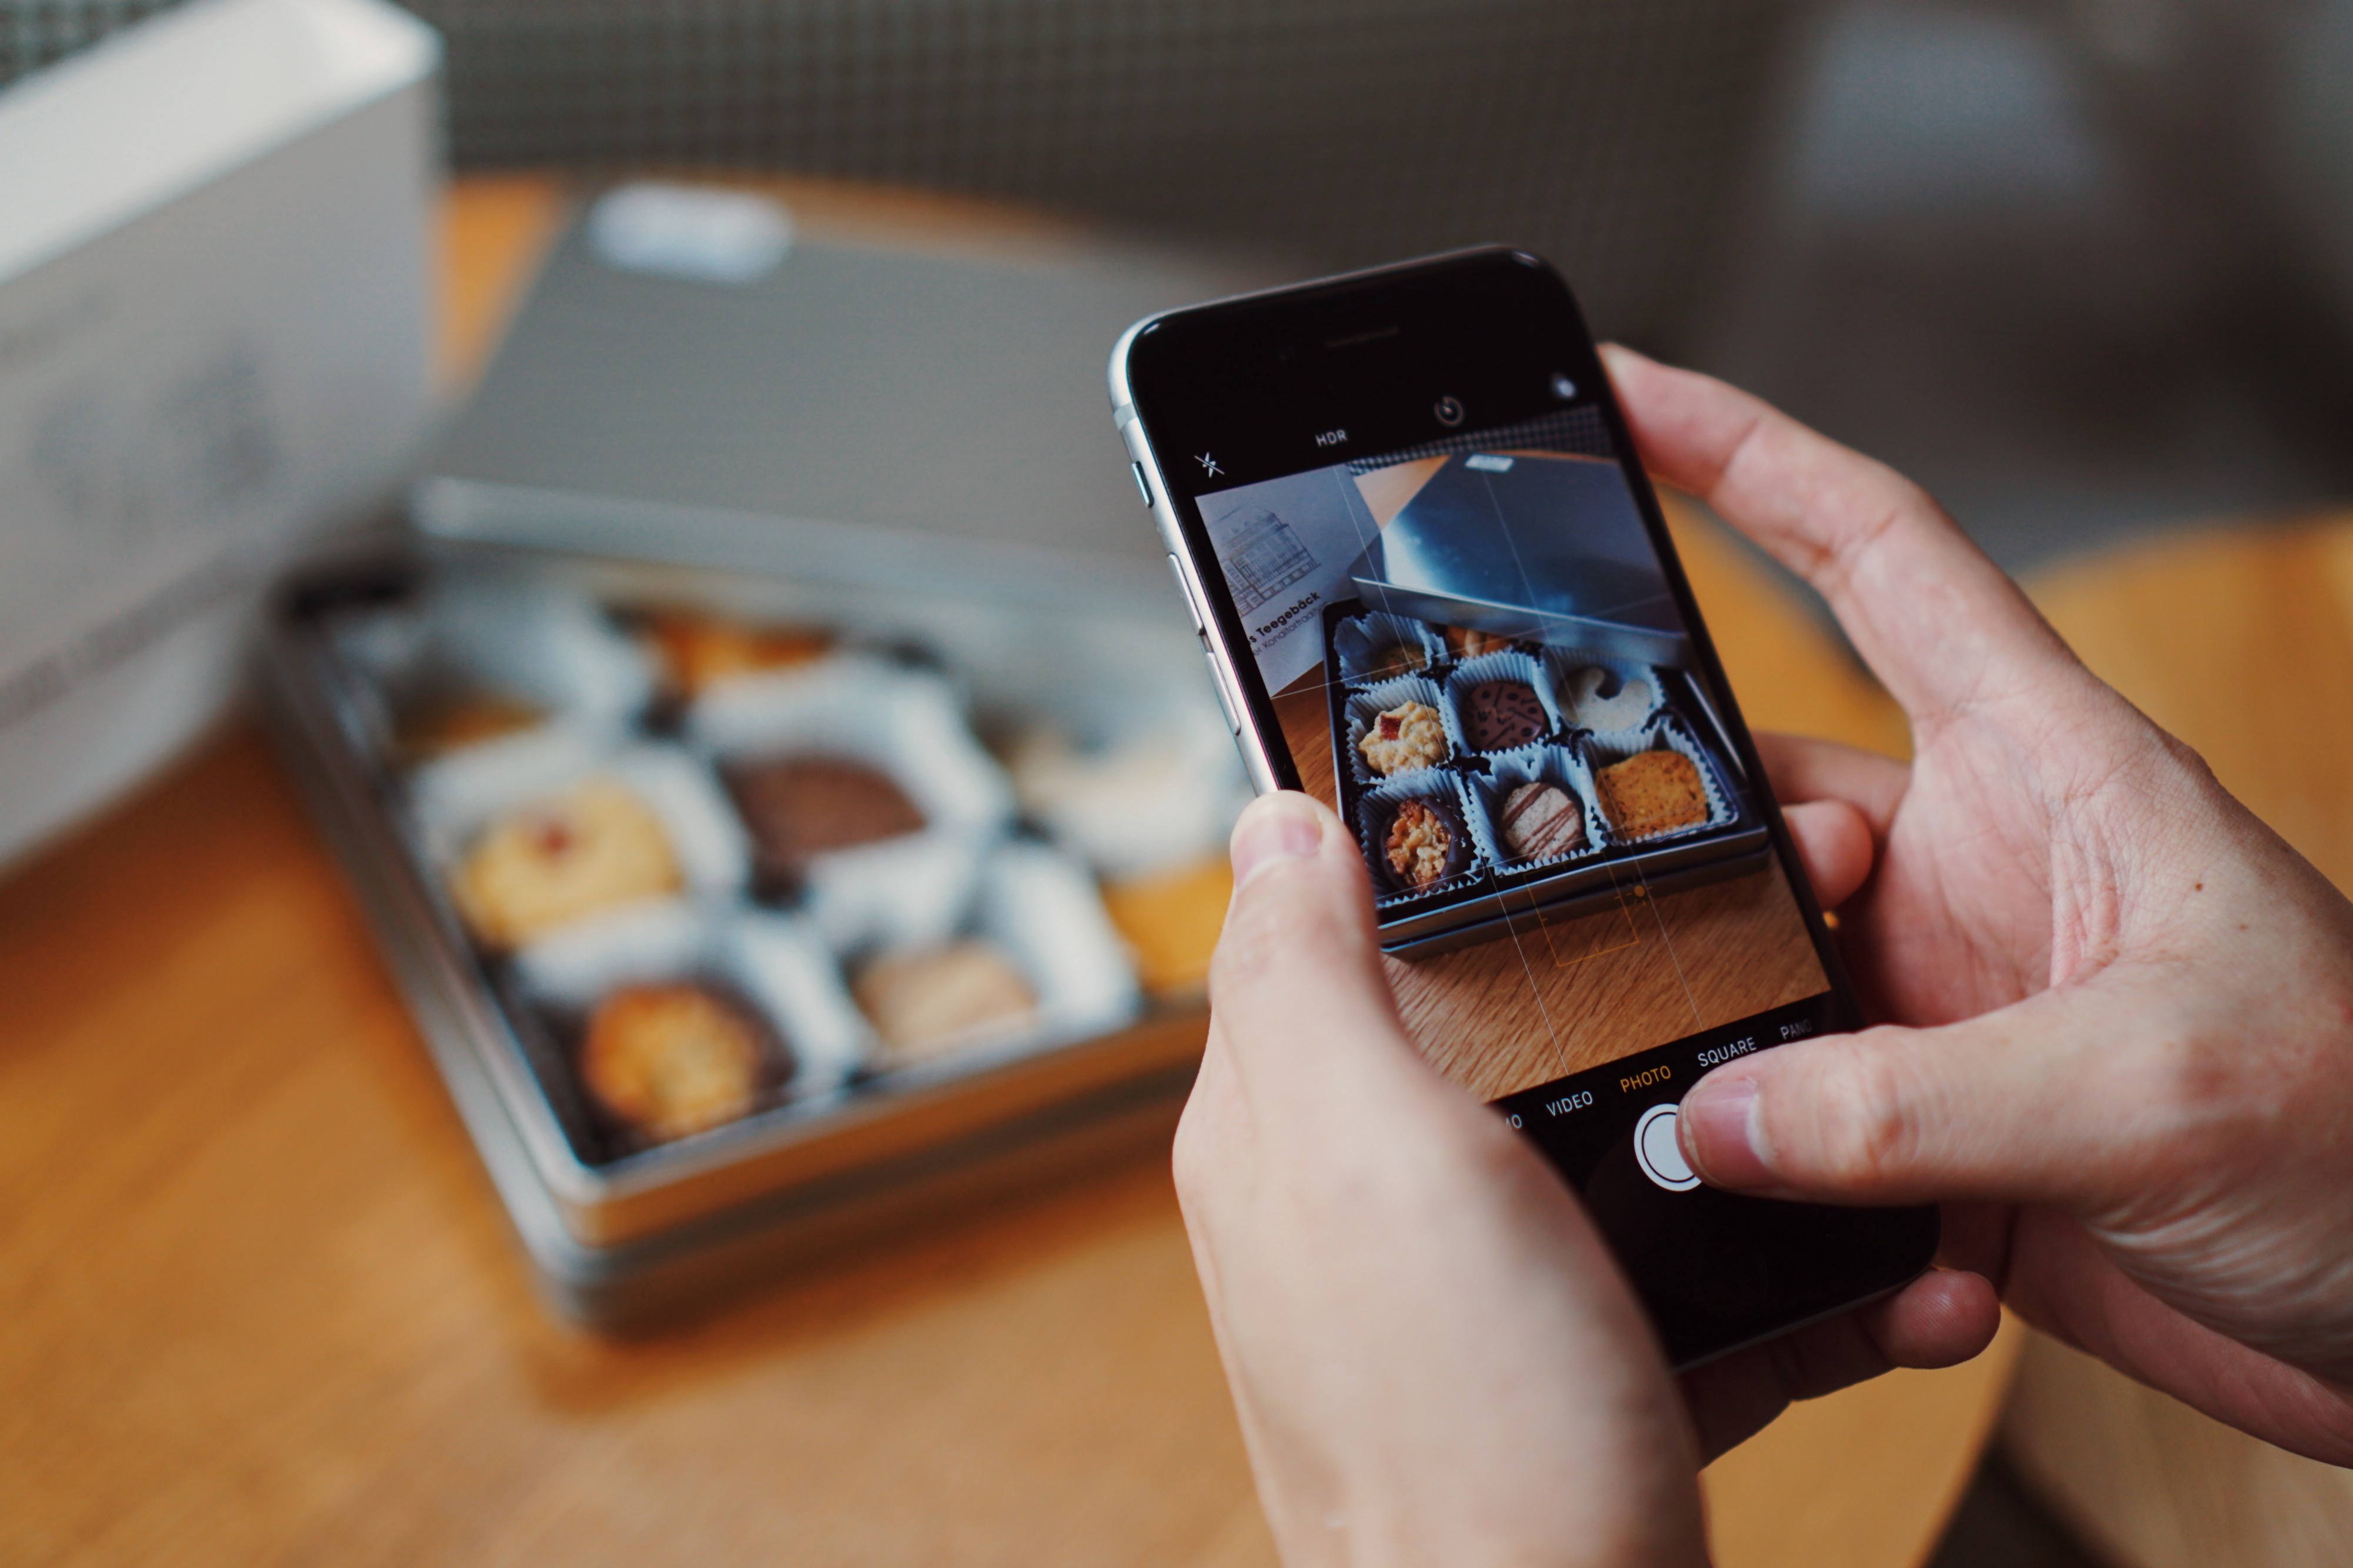 The Top 5 Instagram Photo Editor Apps In 2019 - Marketing